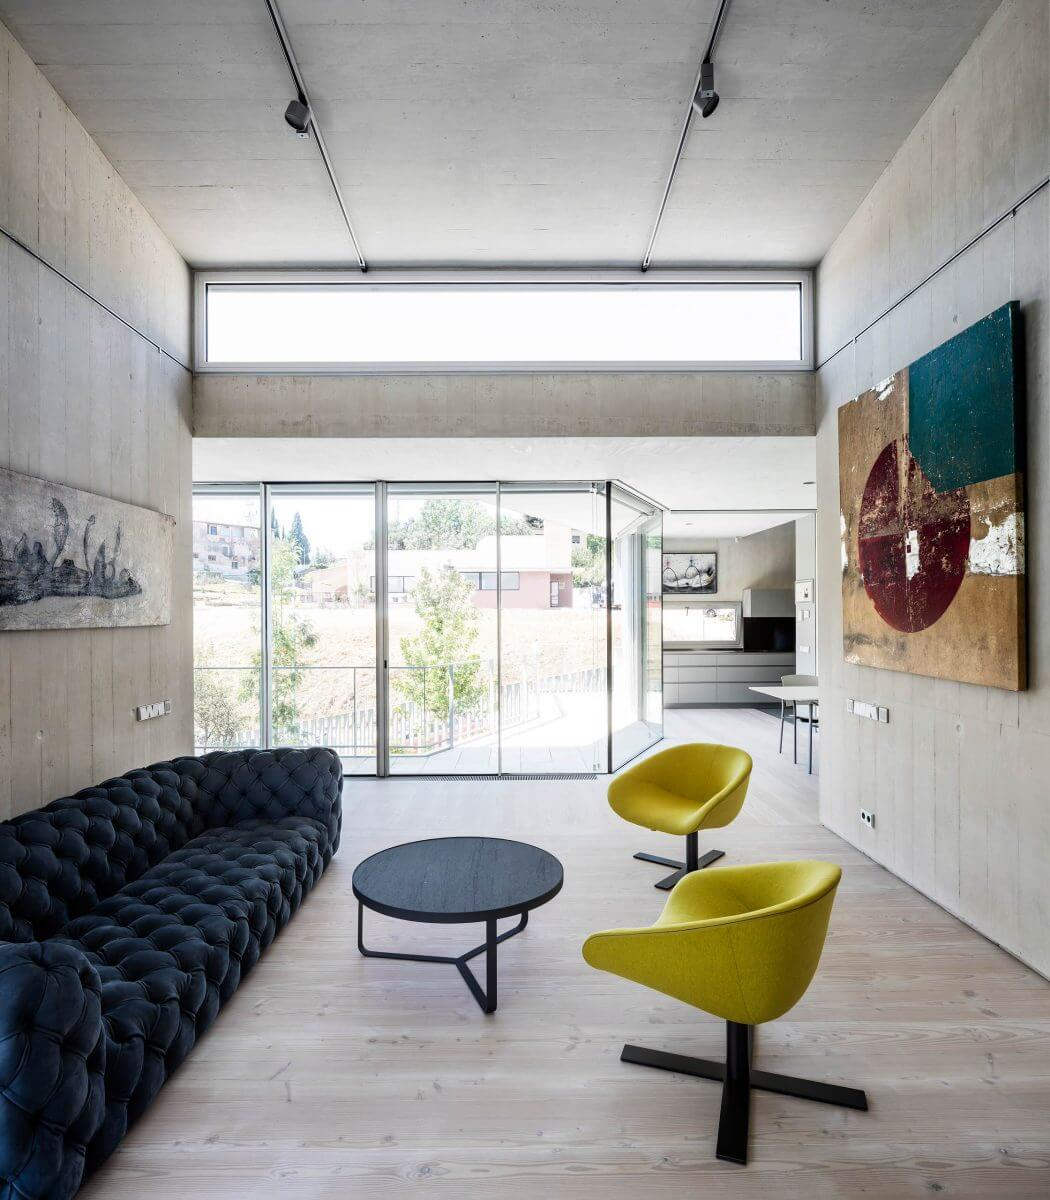 3. Contemporary Home in Barcelona by 05 AM Arquitectura - Contemporary Home in Barcelona by 05 AM Arquitectura